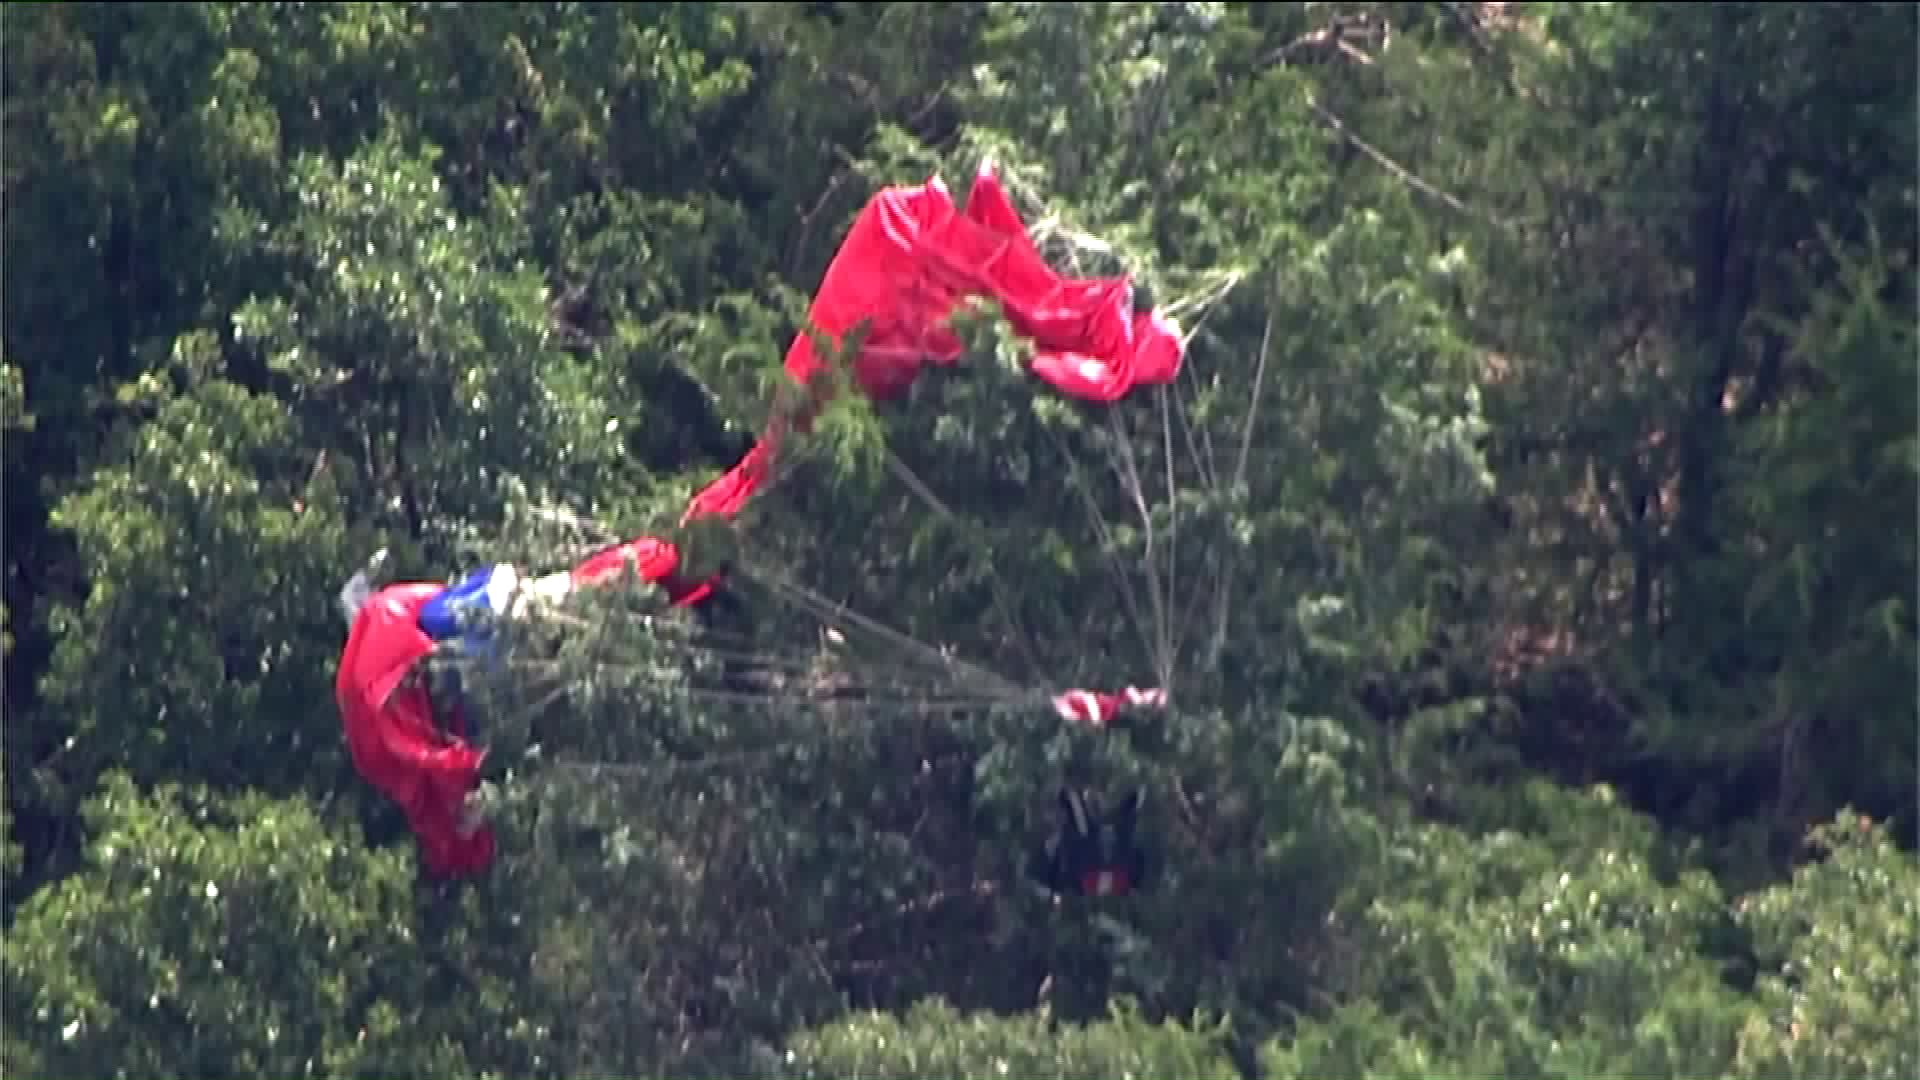 Missing skydiver's parachute found.